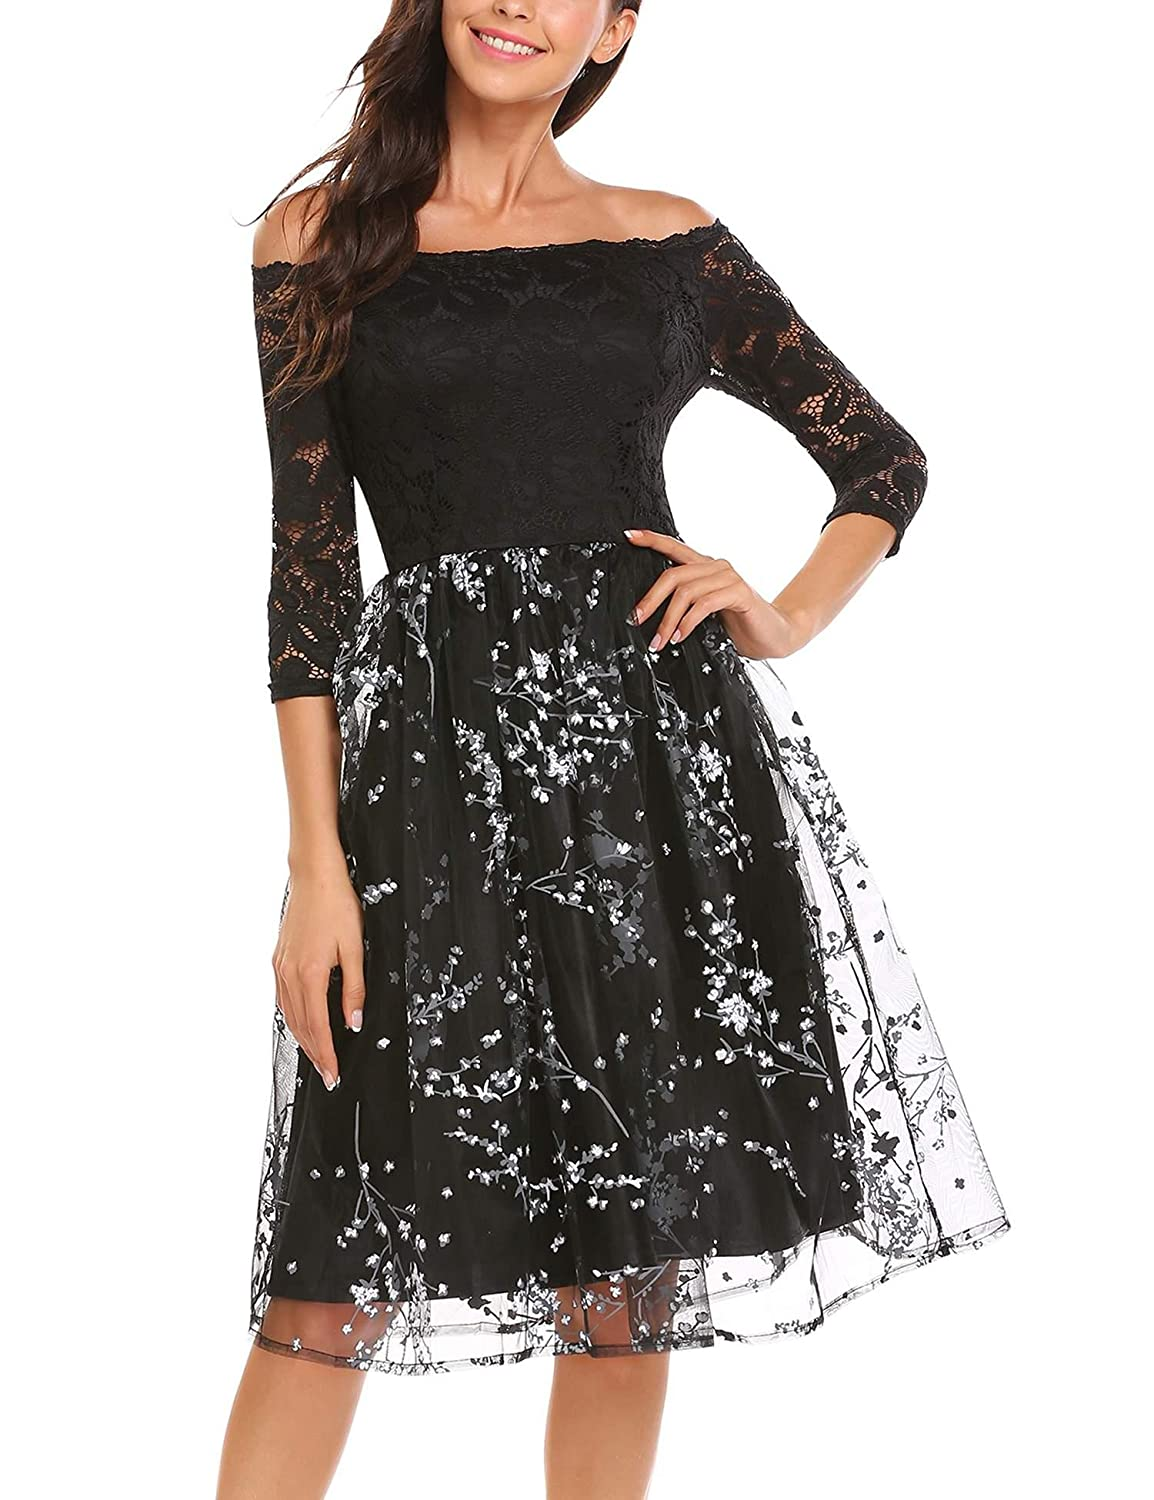 b1b4373b2e4 ANGVNS Women s Off Shoulder 3 4 Sleeve Retro Floral Lace Cocktail Party A-line  Dress at Amazon Women s Clothing store